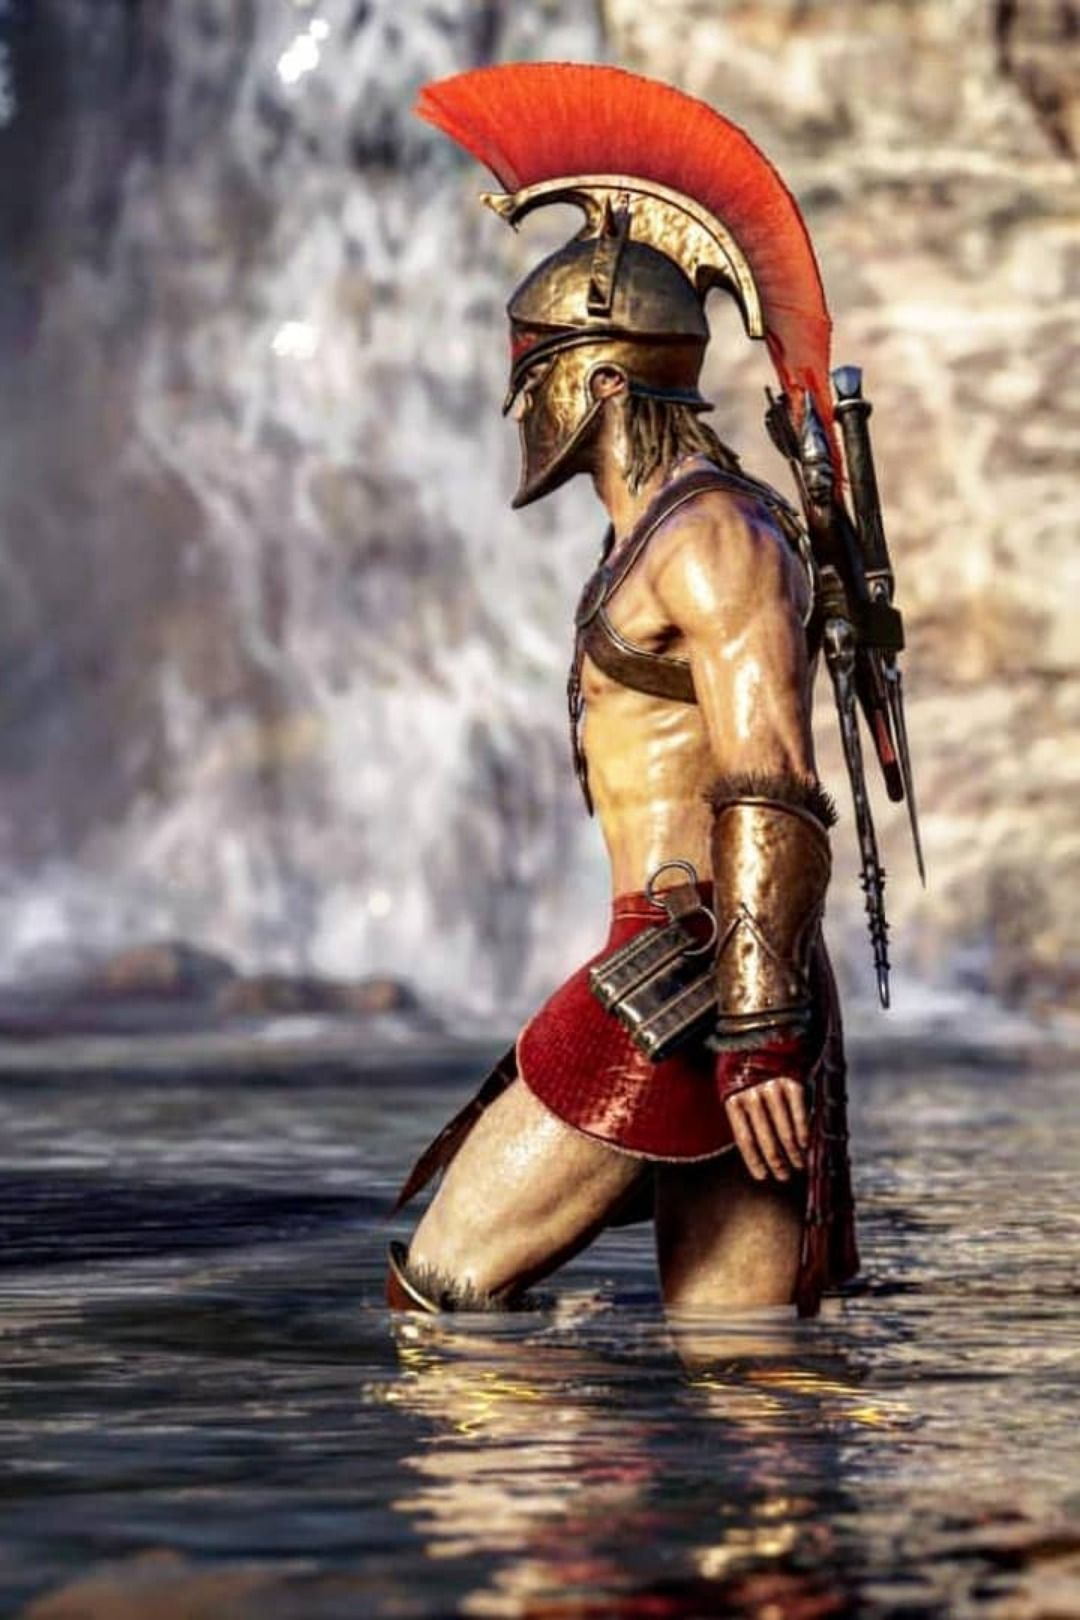 Assassin S Creed Odyssey Assassins Creed Odyssey Assassin S